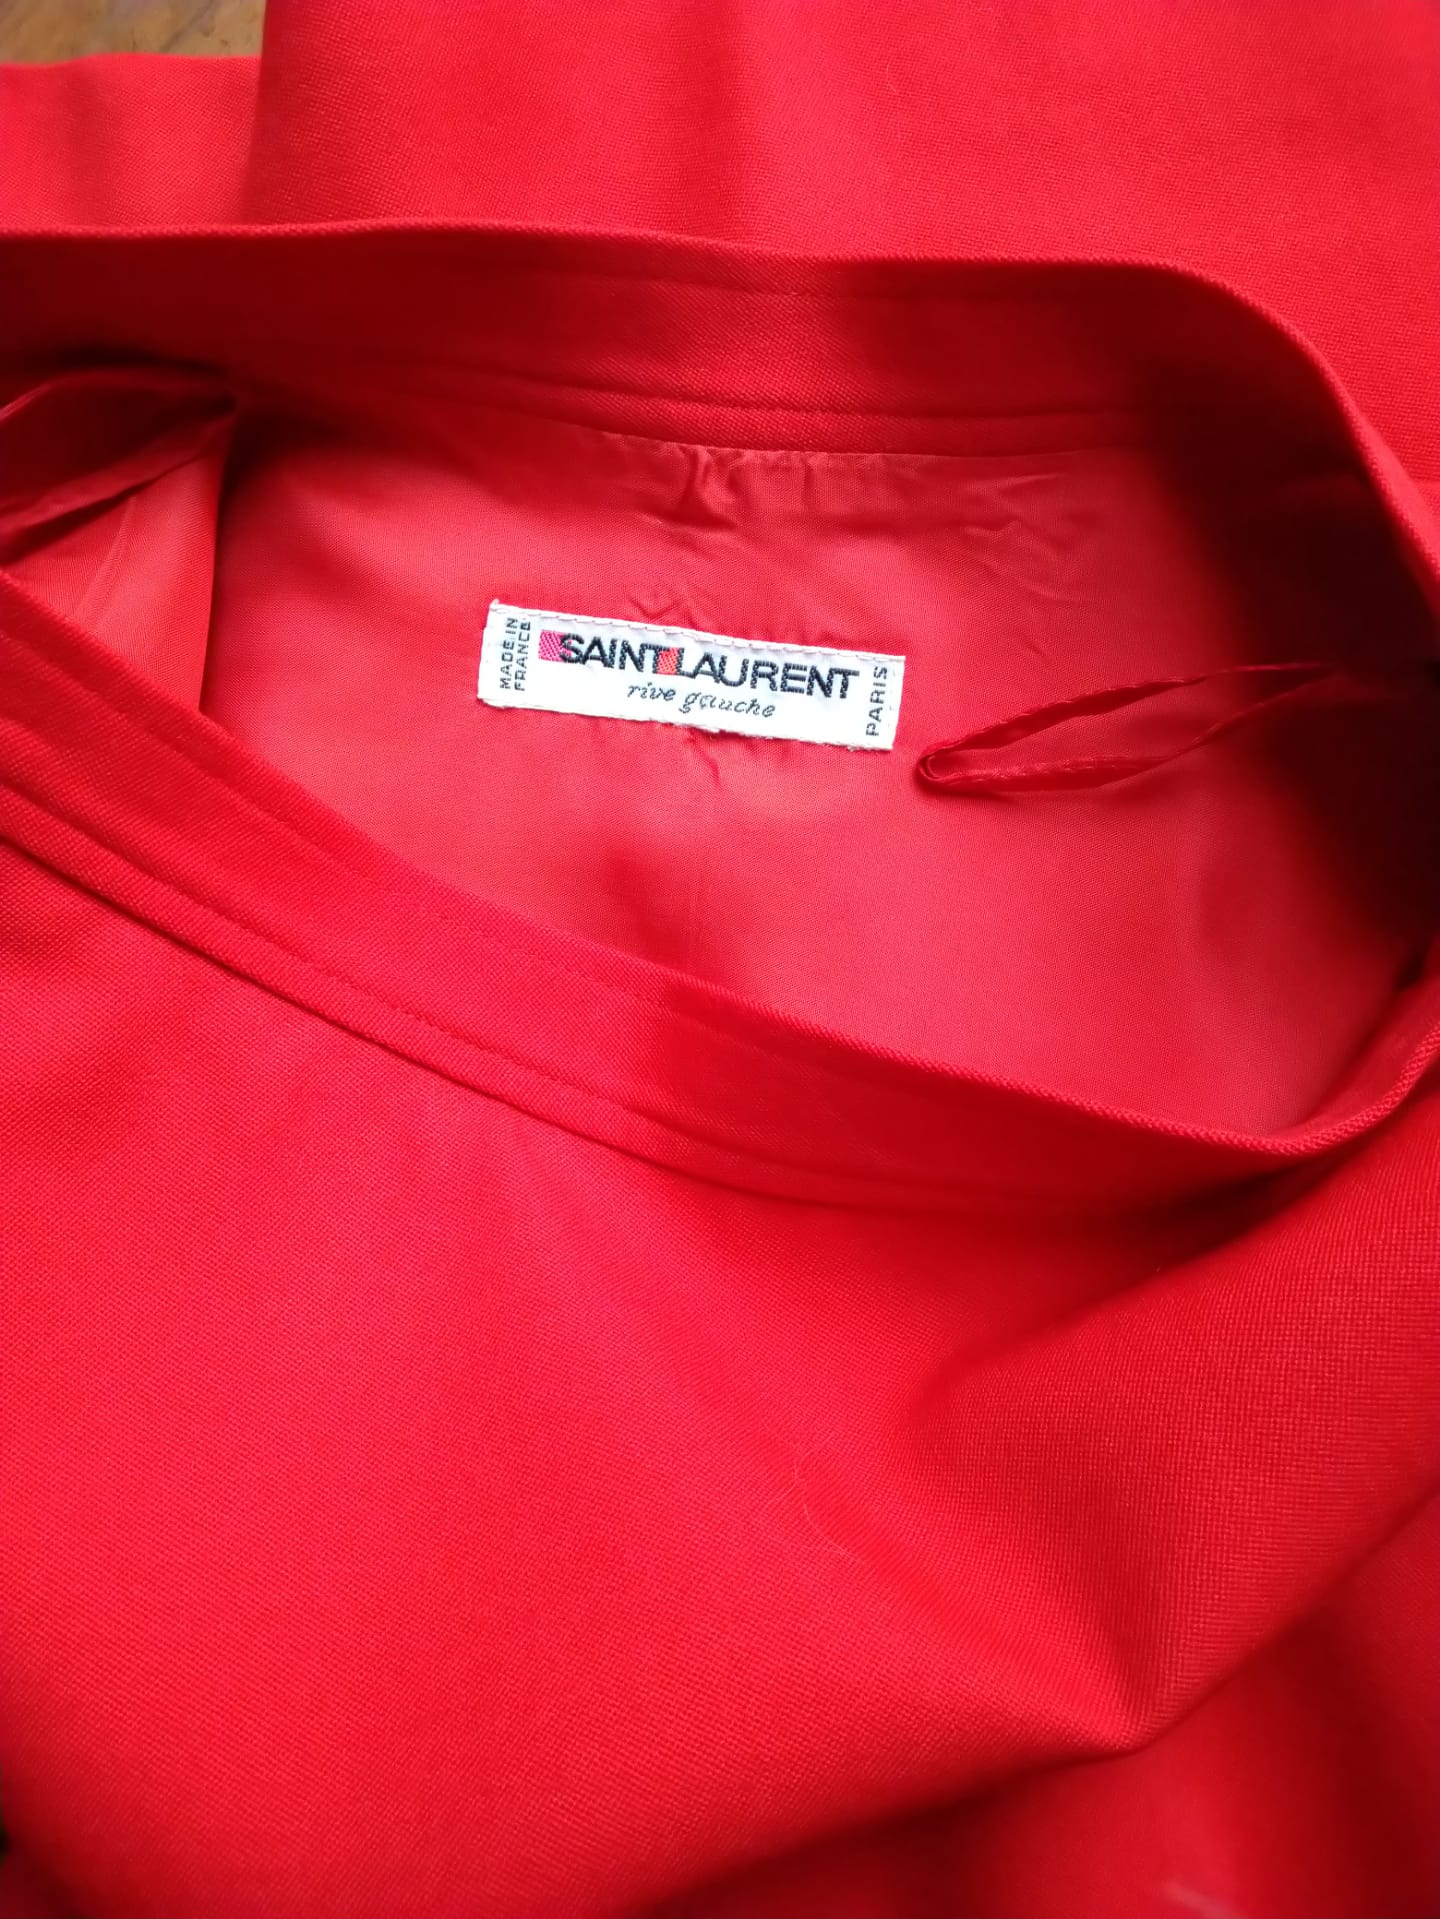 Yves Saint Laurent red flared skirt